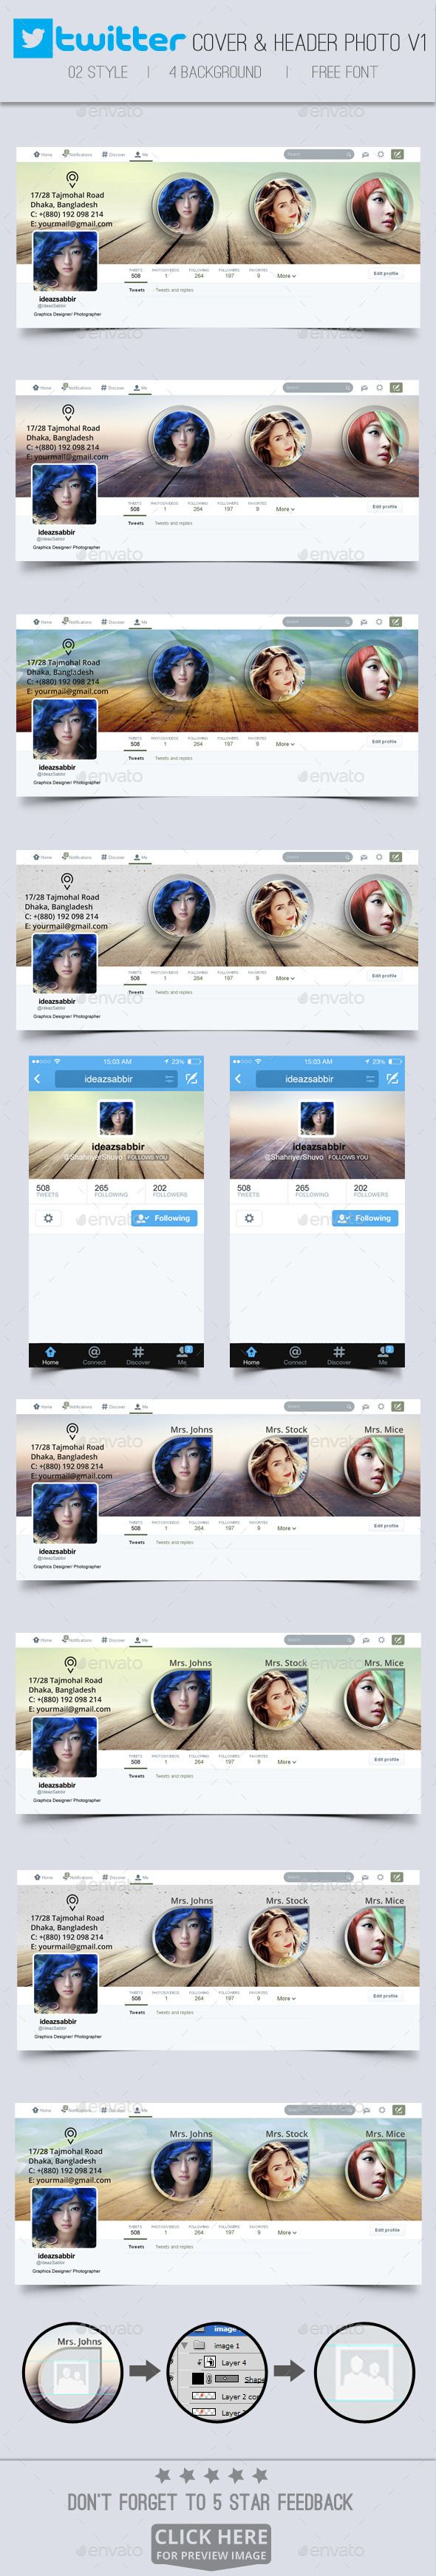 Twitter Covers & Header Pack V01 This is a great pack of modern, stylish and corporate twitter header images that can be use as a